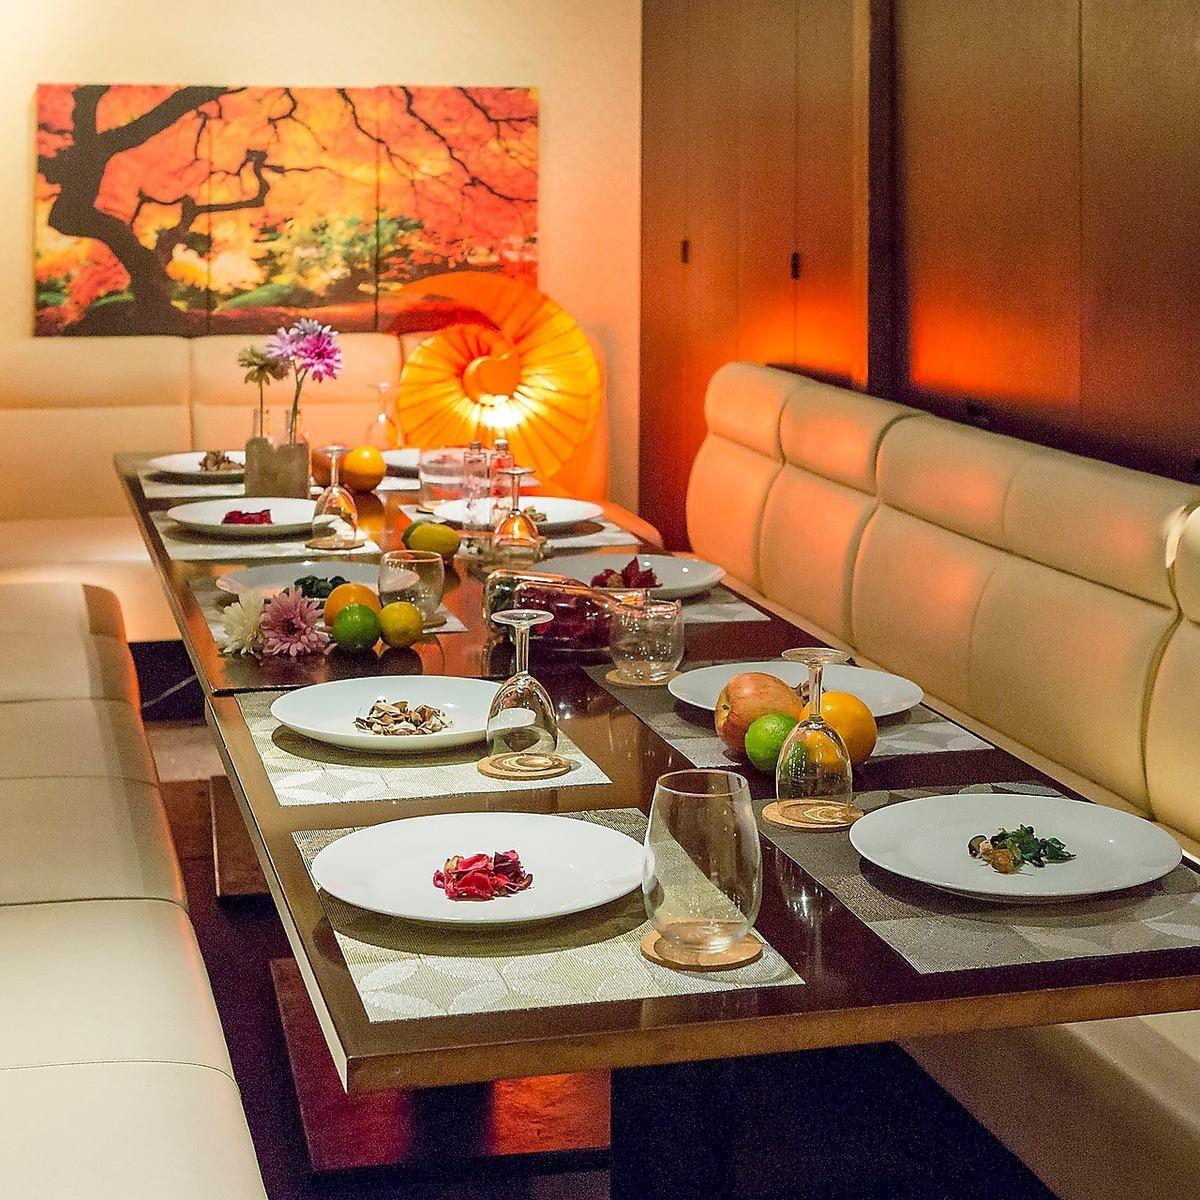 ◎ comfortable banquet in a private room space with the theme of Japanese and Western cuisine